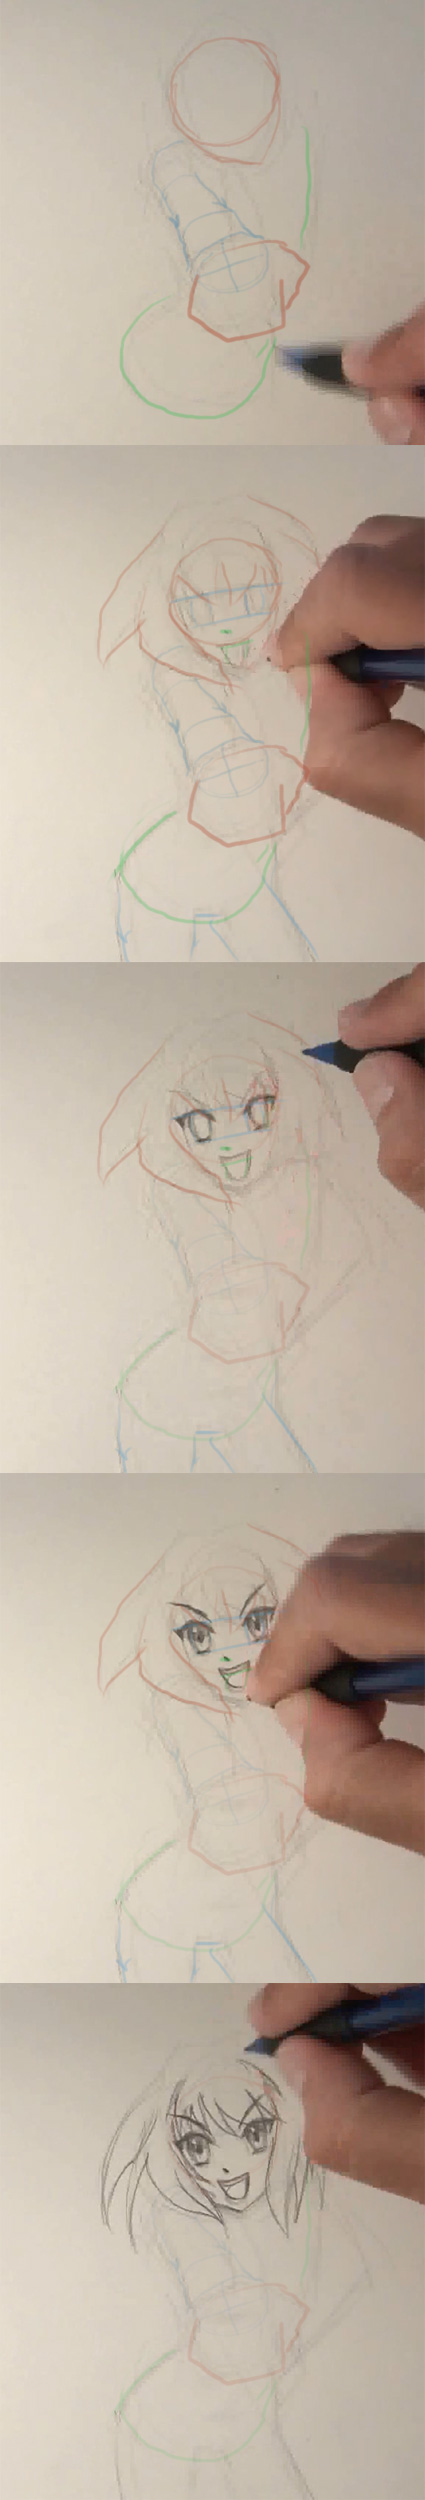 draw anime forshortening tutorial How to draw Anime Girl foreshortening hand